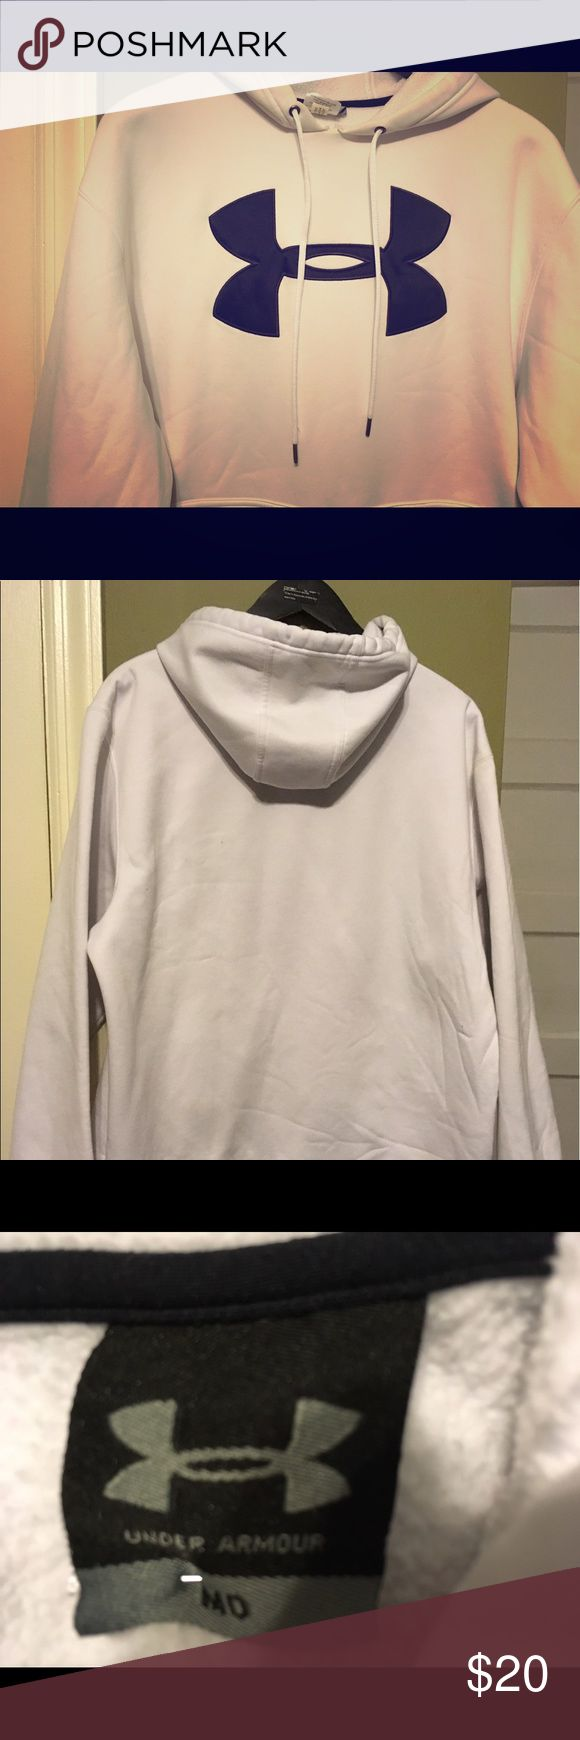 Under Armour men's Hoodie White mens Under Armour Hoodie Size M / in good condition Under Armour Shirts Sweatshirts & Hoodies